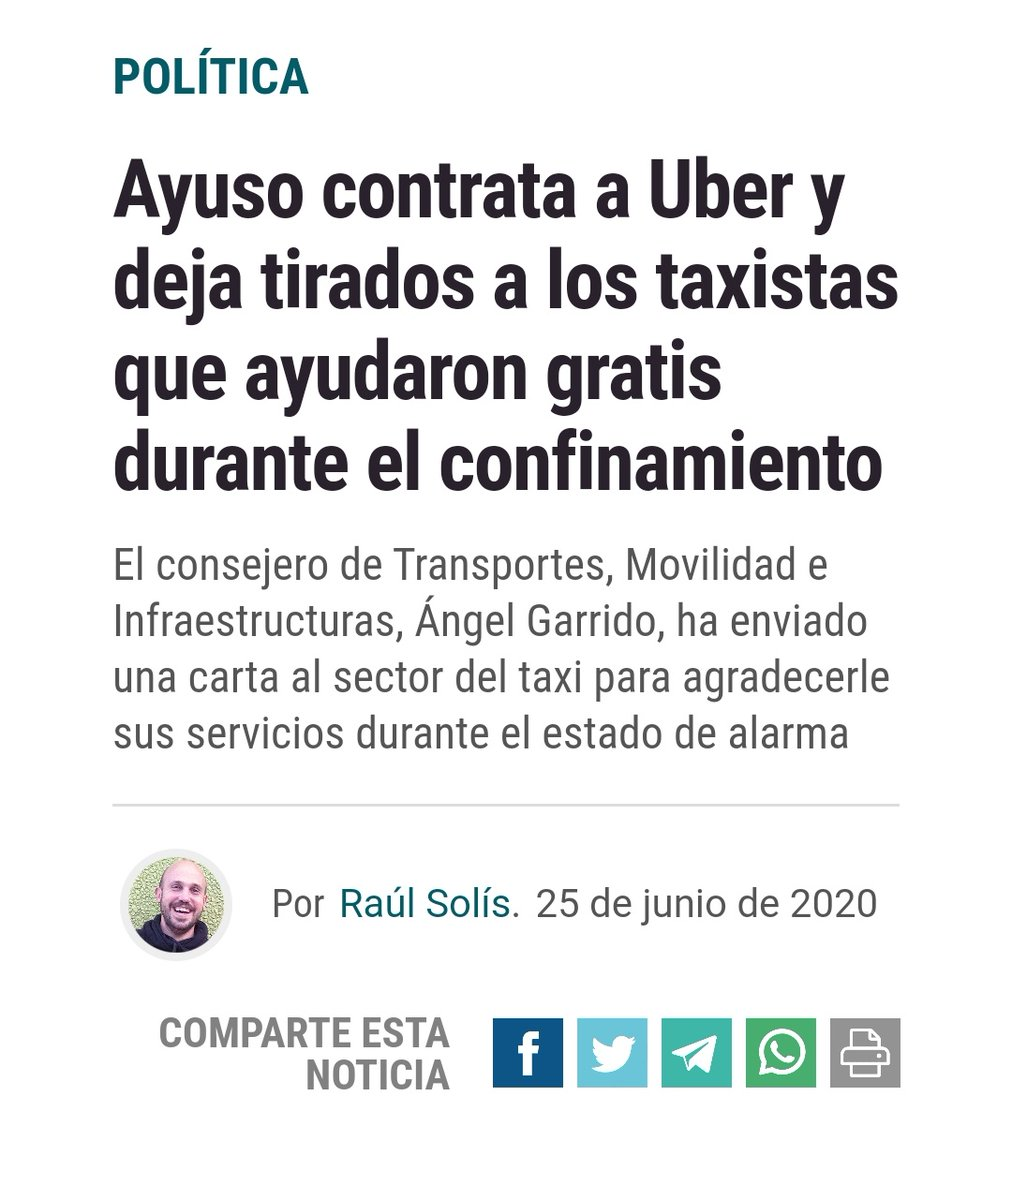 Nada es casual en la Comunidad de Madrid 👇👇 https://t.co/yYg1VH2evb